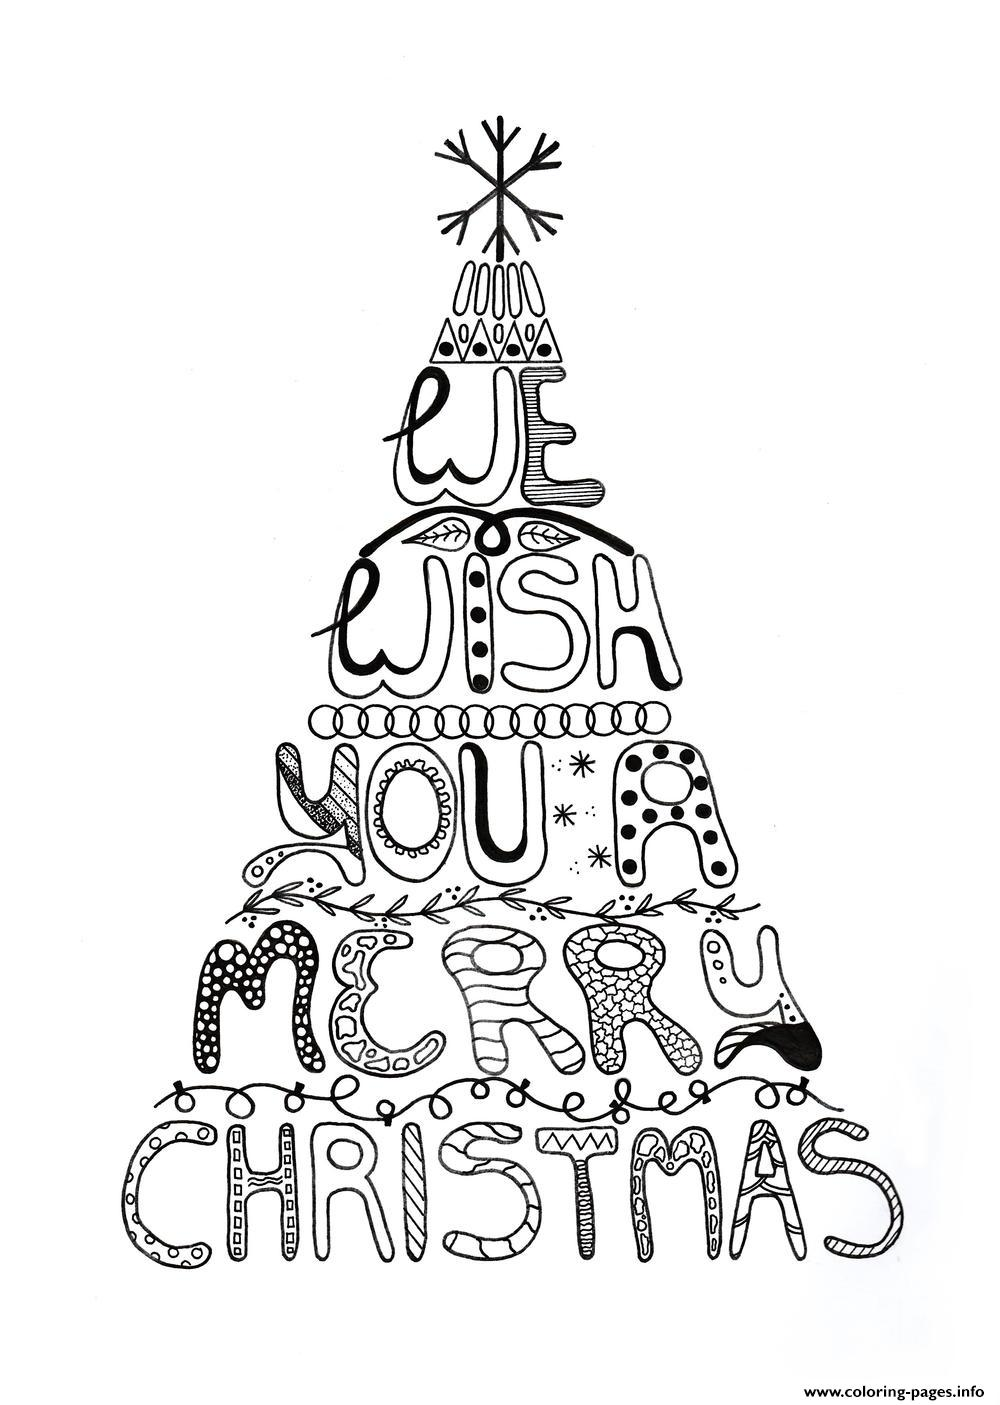 Merry Christmas Adult Tree Coloring Pages Printable | christmas tree coloring pages for adults